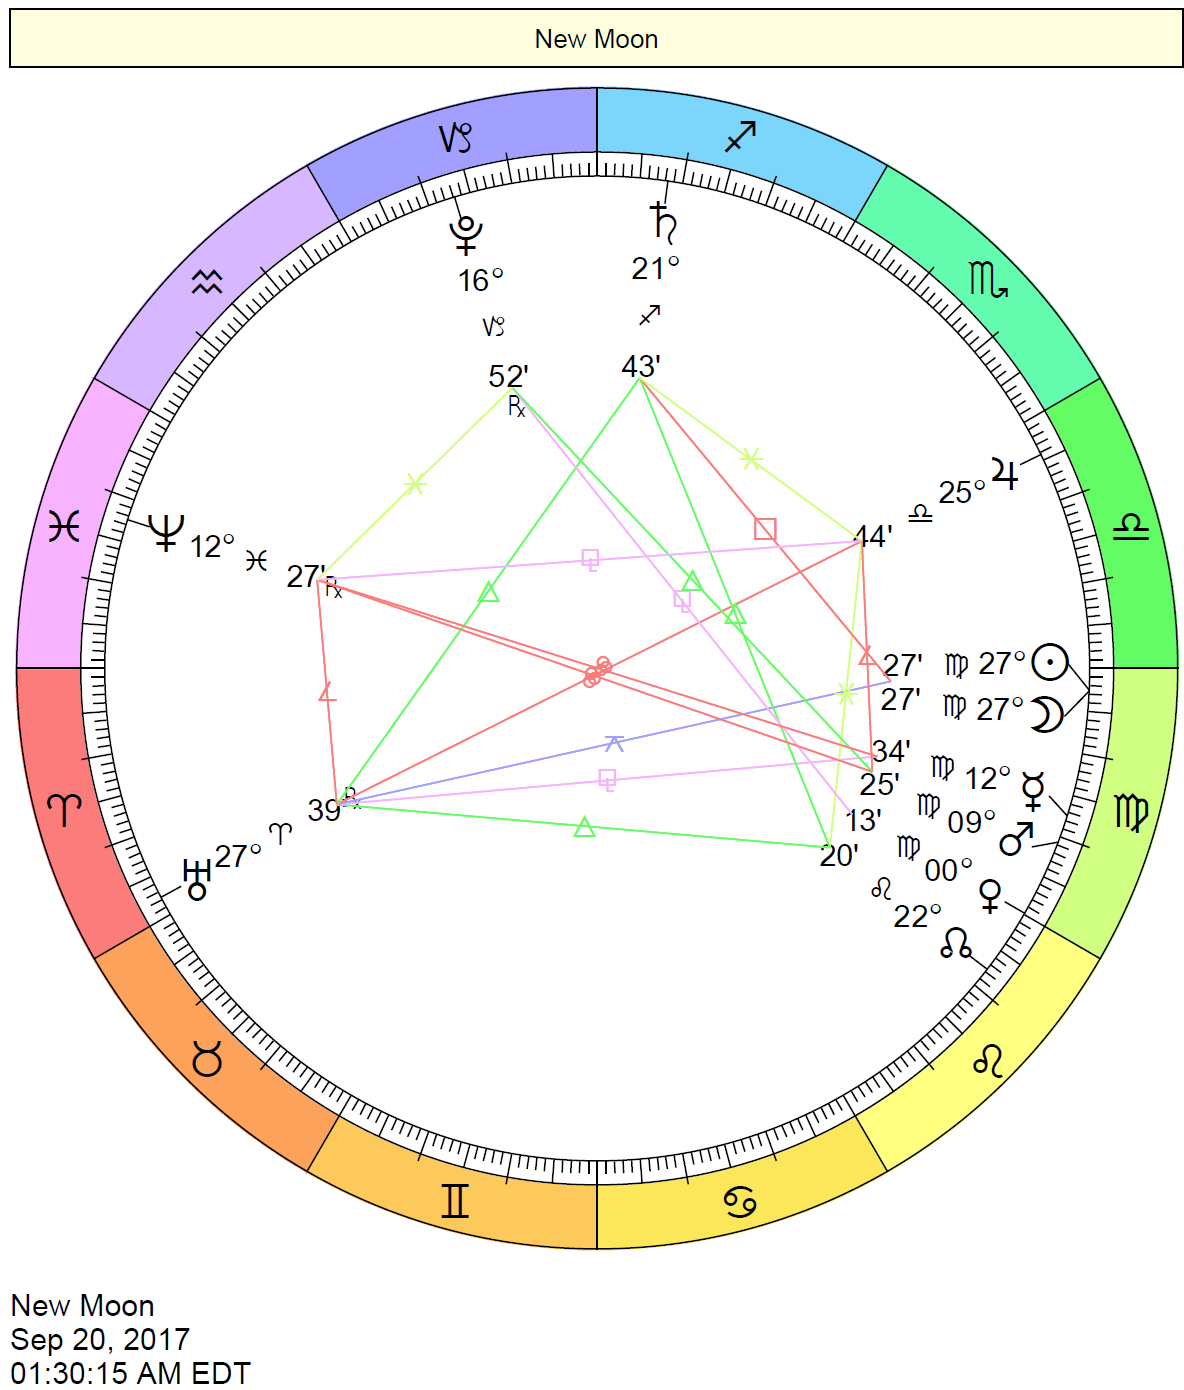 New moon in virgo chart on september 20 2017 a s t r o l o g y new moon in virgo chart on september 20 2017 geenschuldenfo Image collections